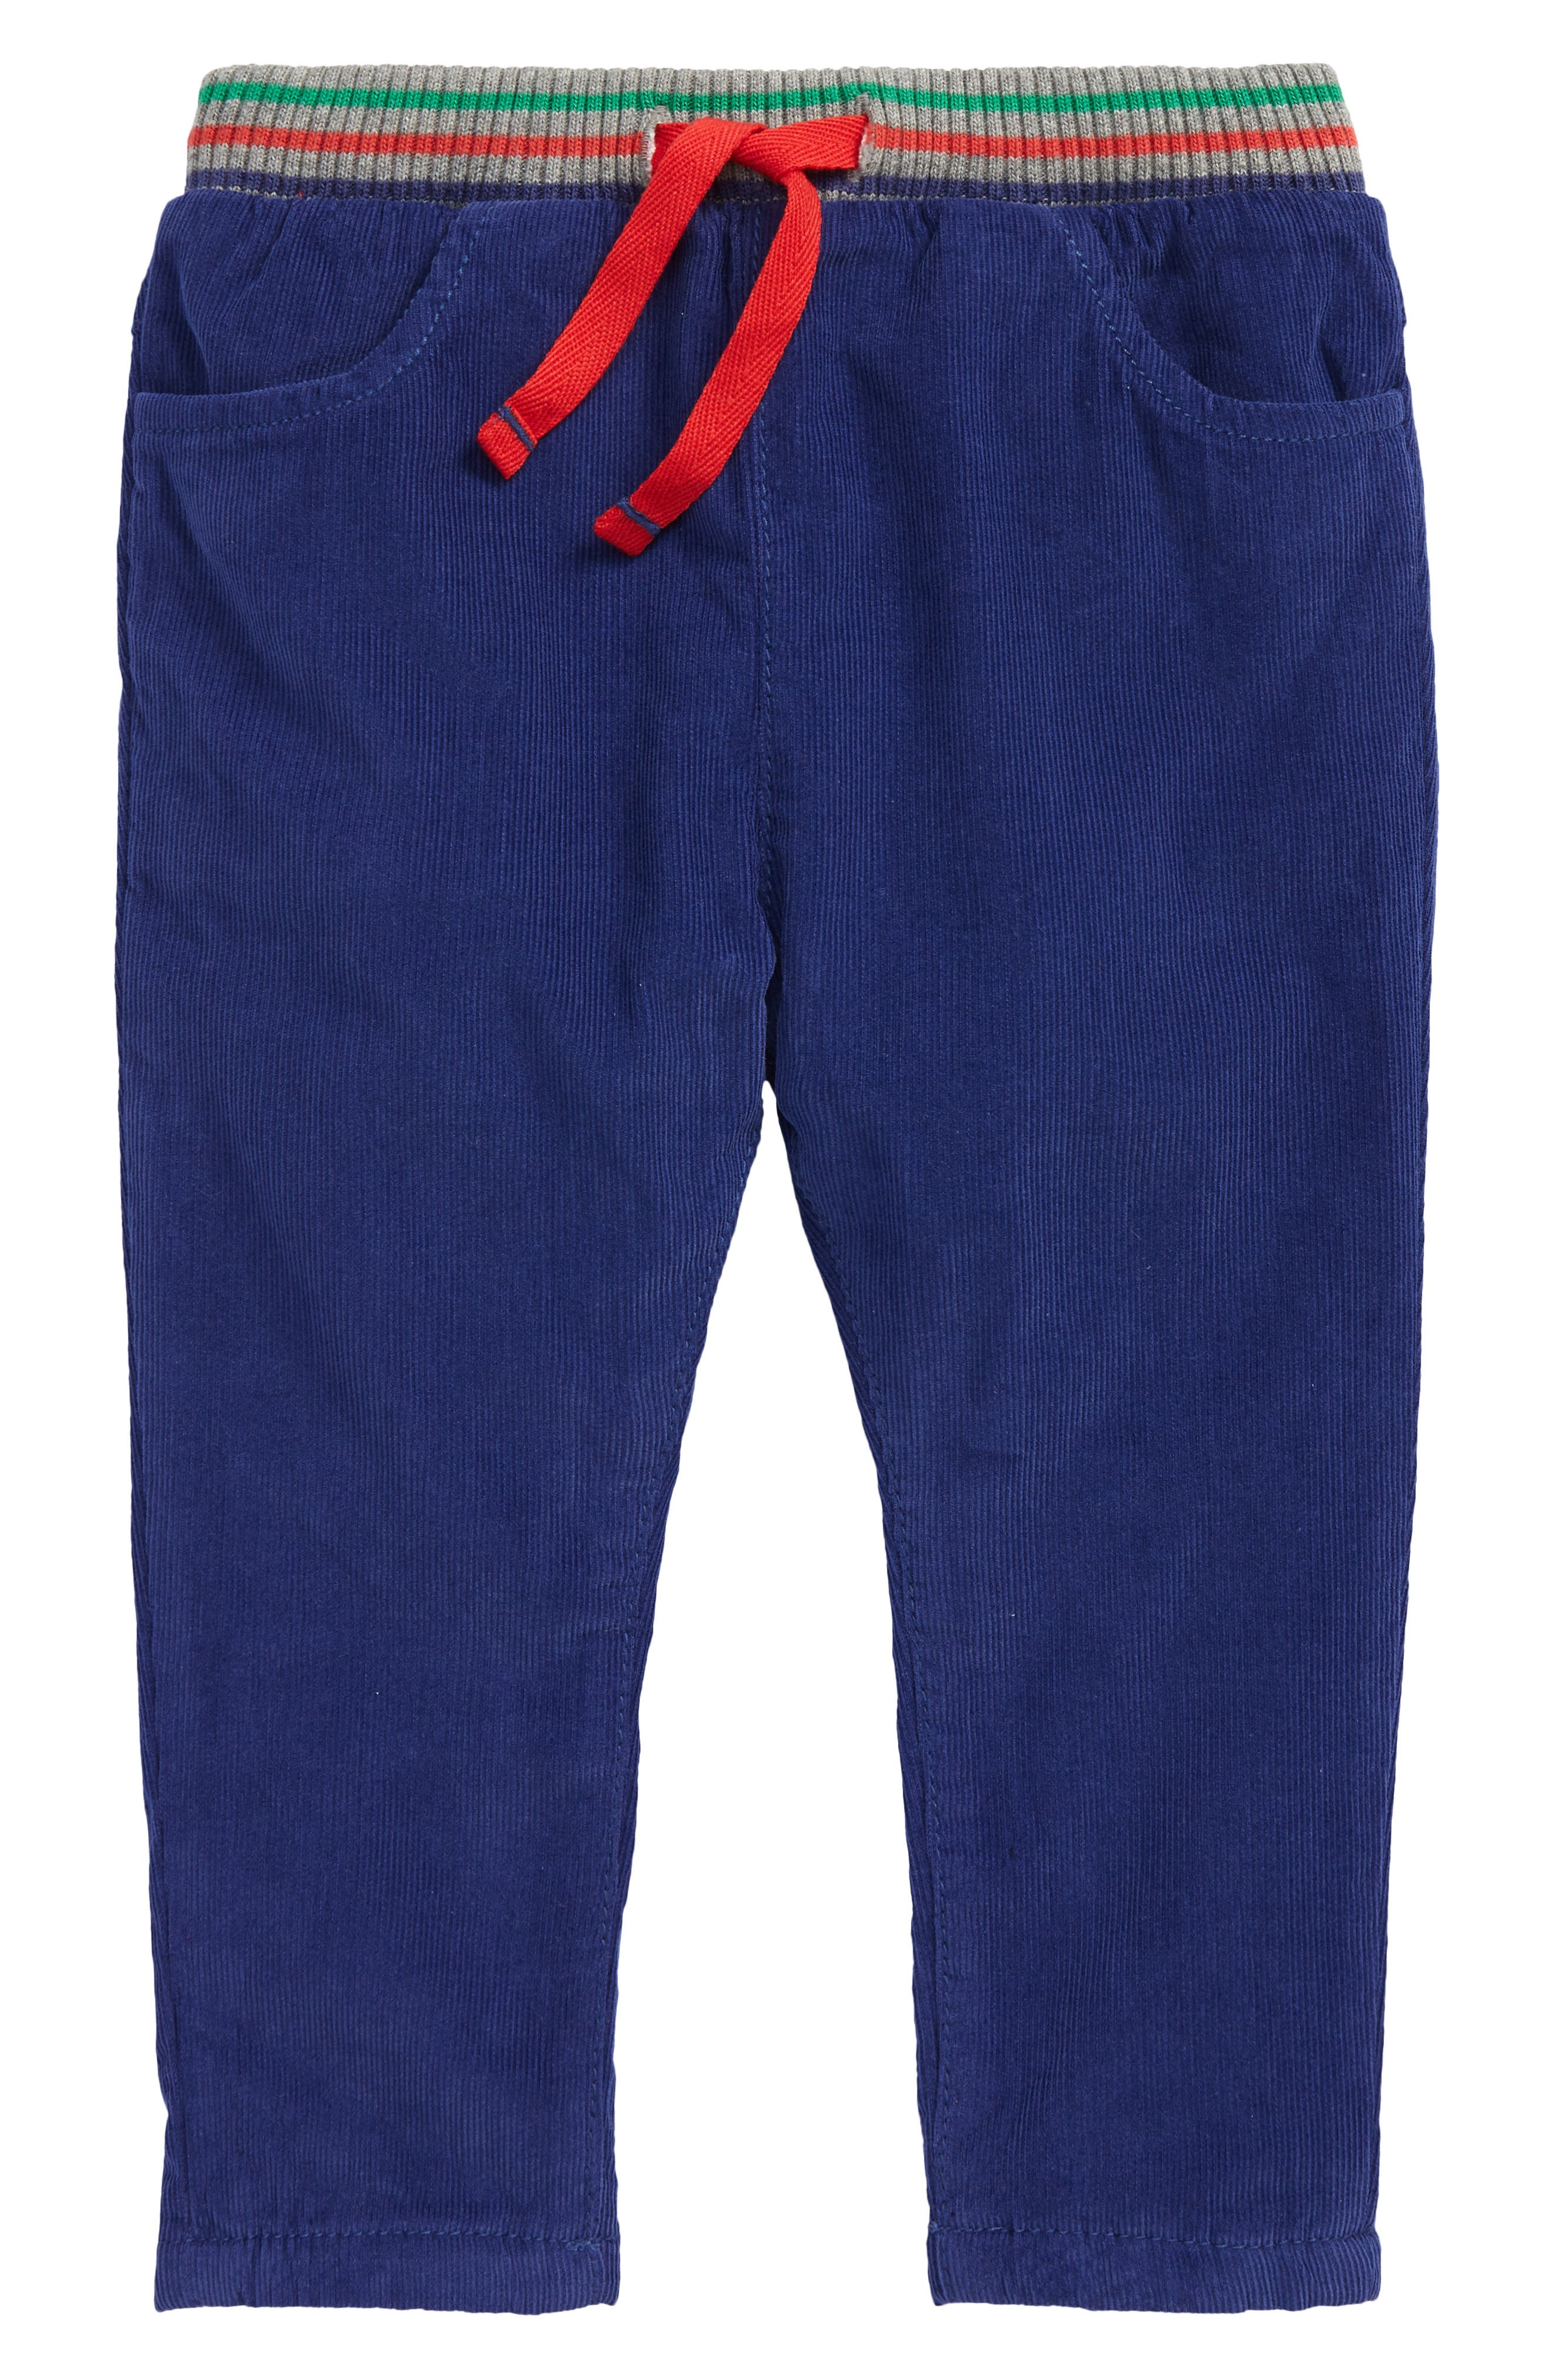 Comfy pull-on corduroy pants feature a sporty striped lining and stretchy drawstring waist. Style Name: Mini Boden Pull-On Corduroy Trousers (Baby). Style Number: 6097392. Available in stores.